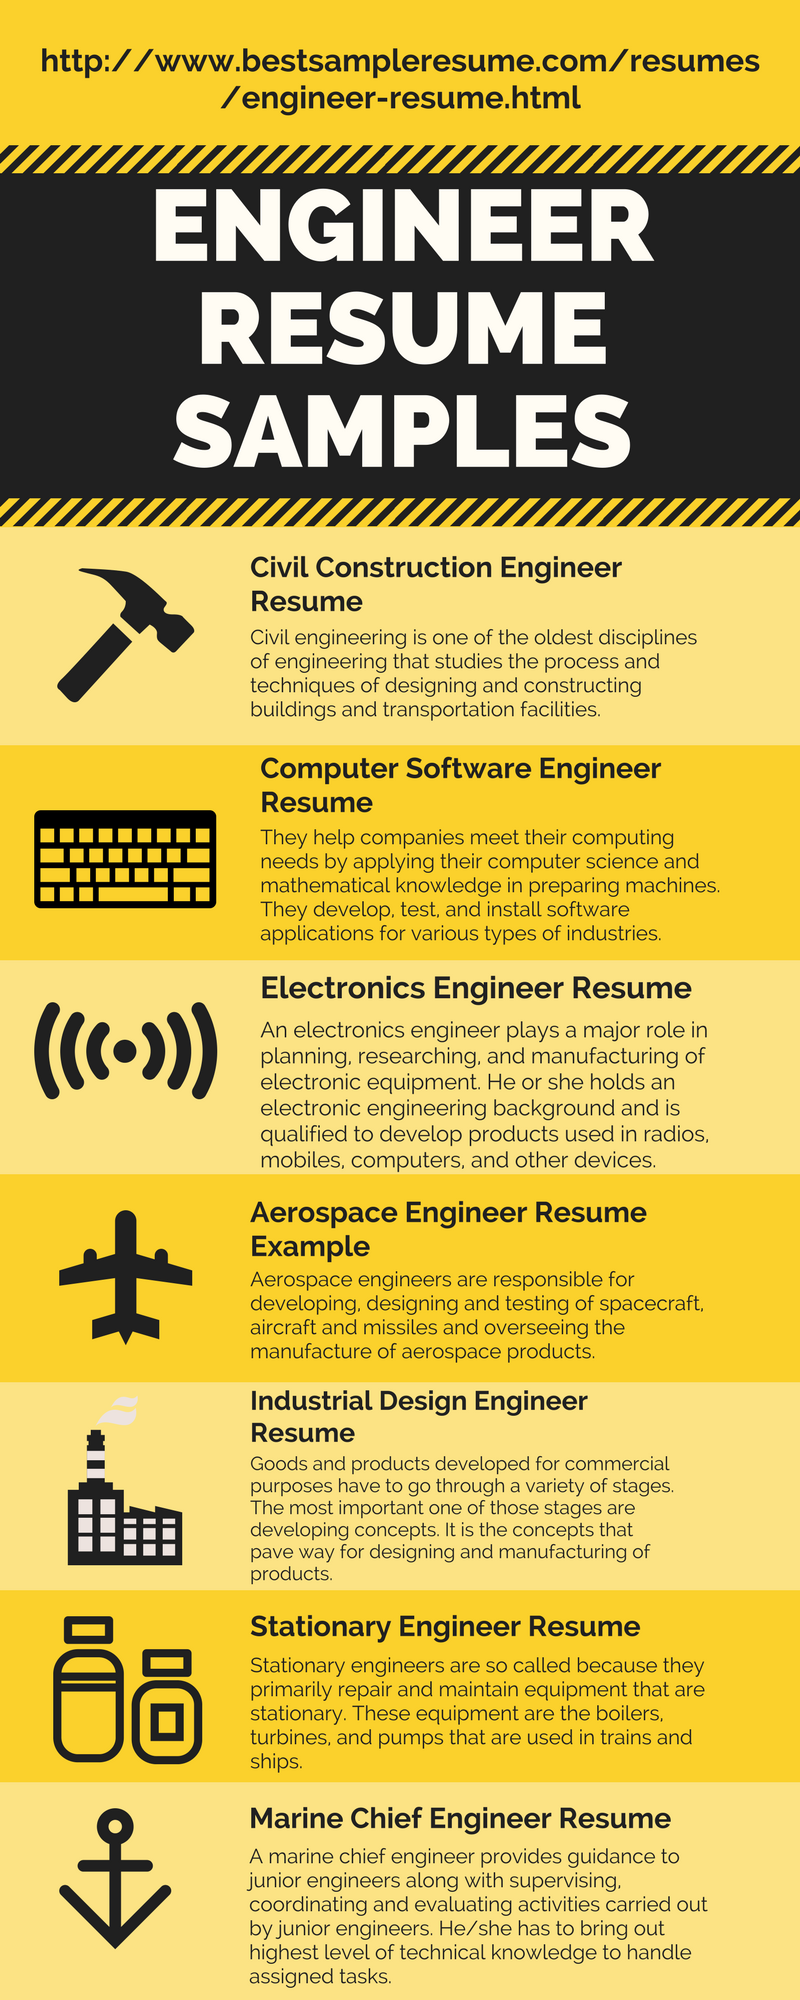 Features Information And Sample Resumes For EngineerS Job Profile